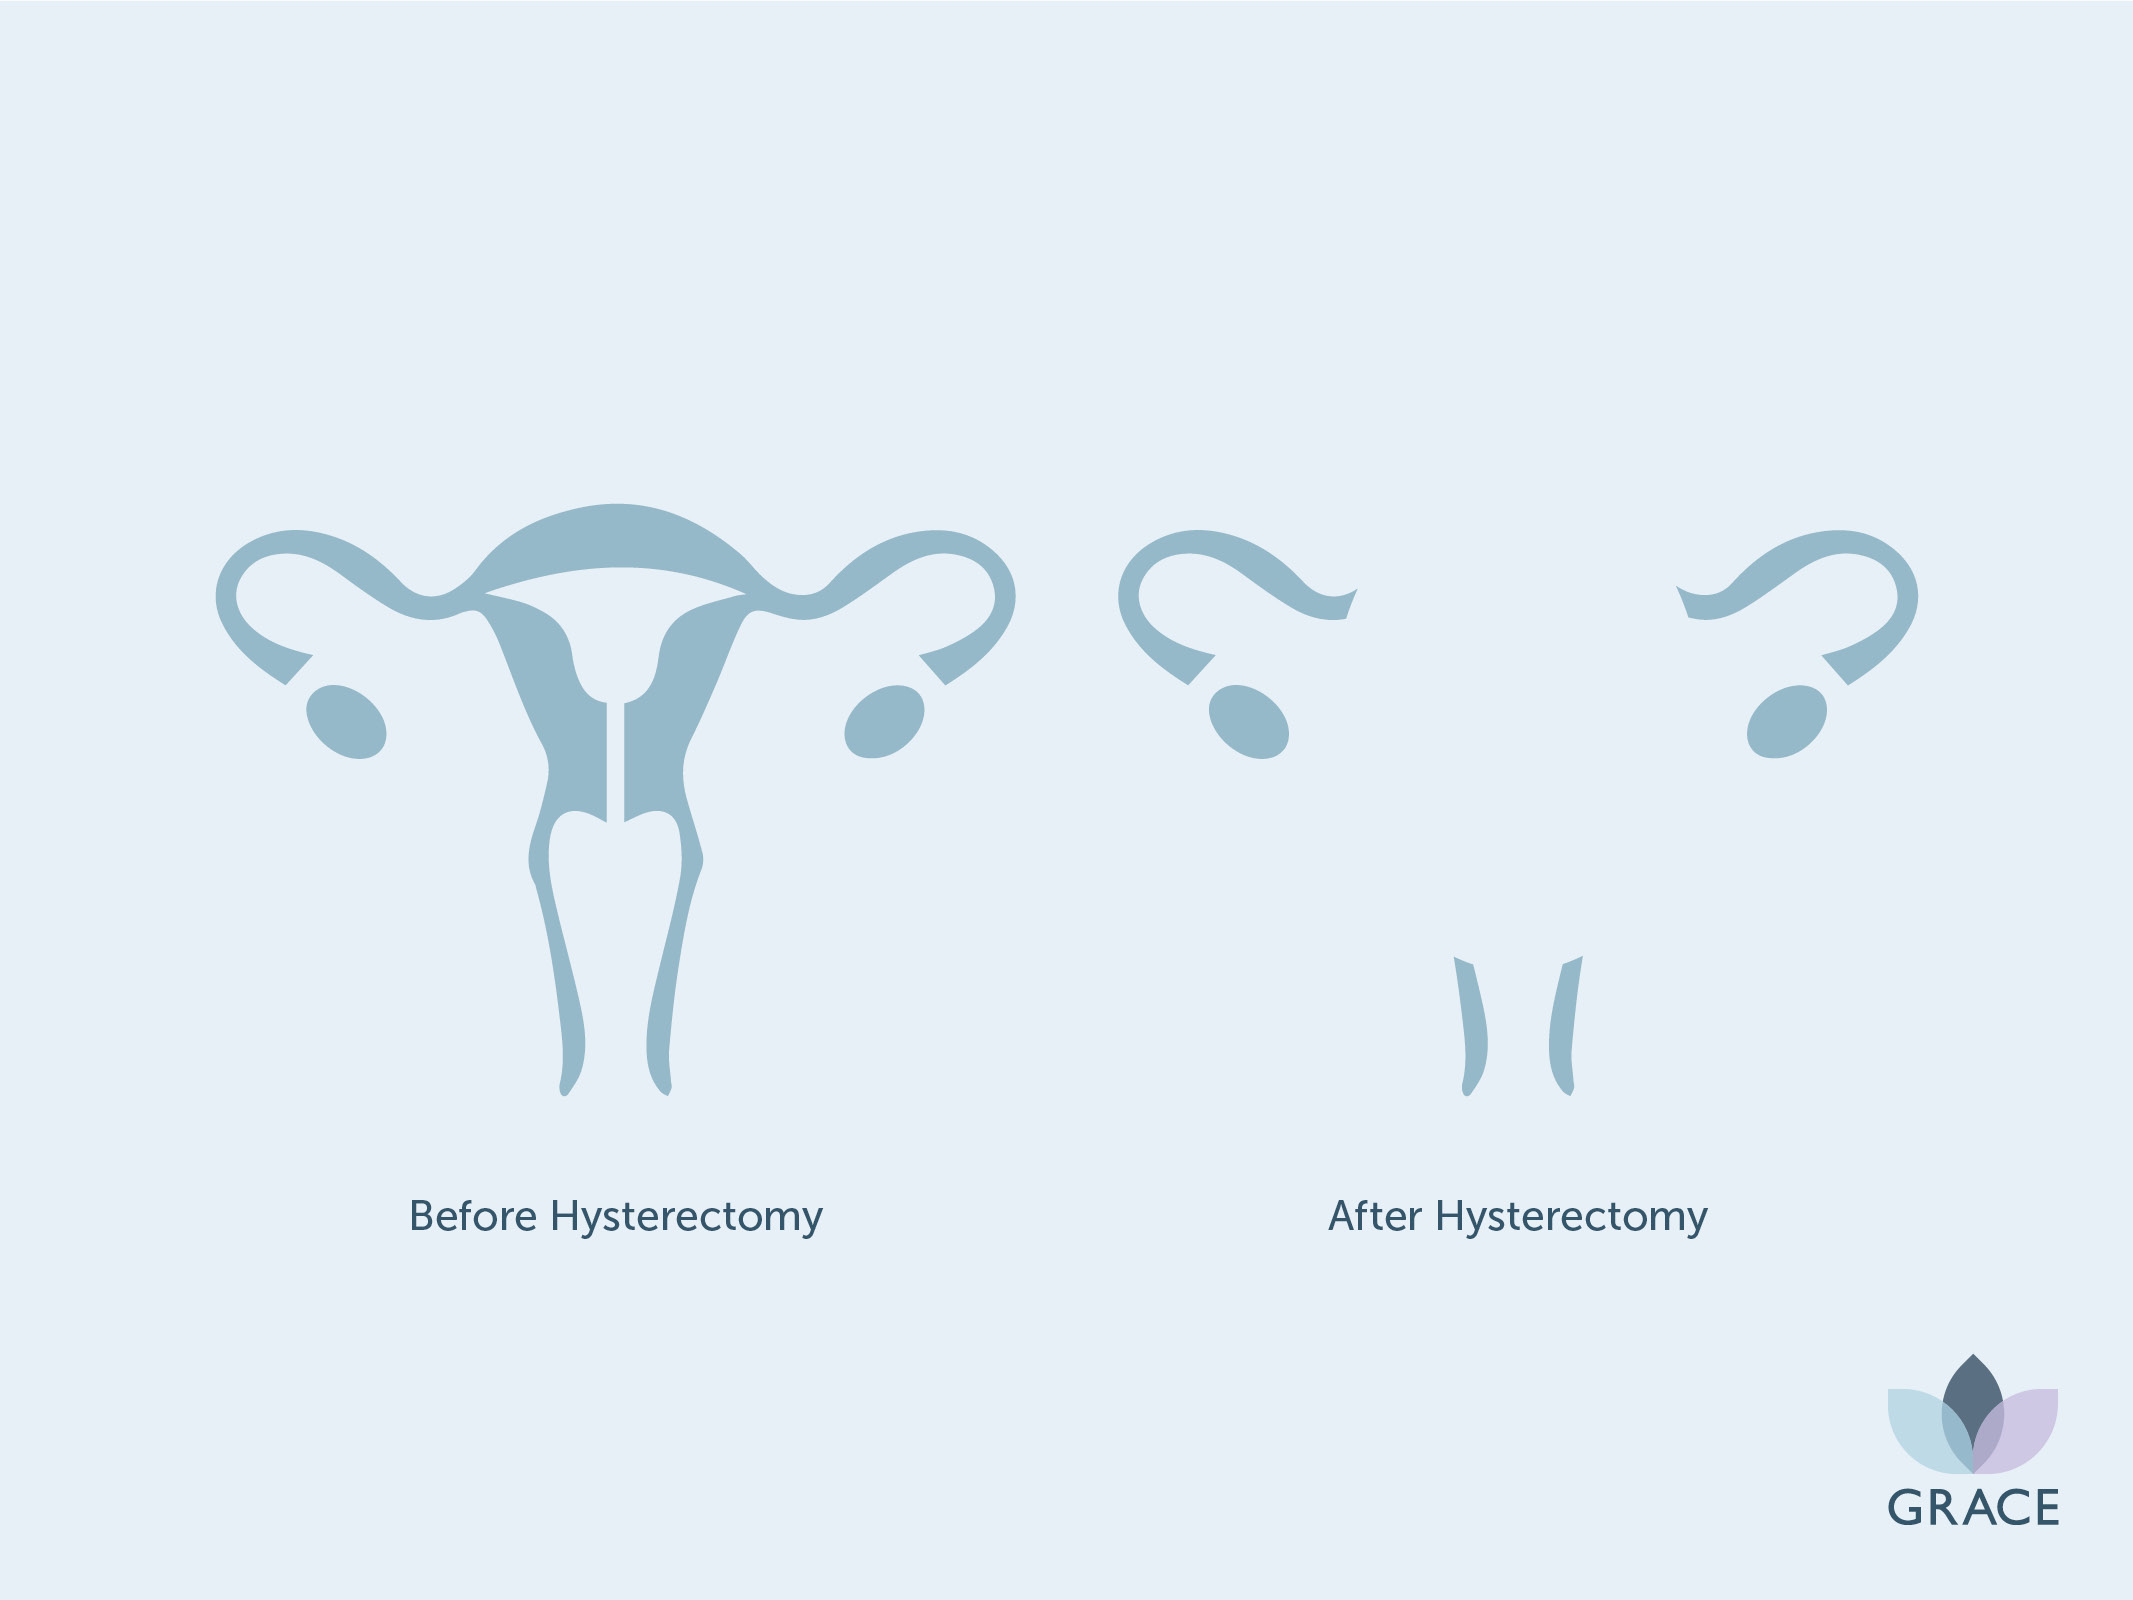 Female reproductive system before and after hysterectomy